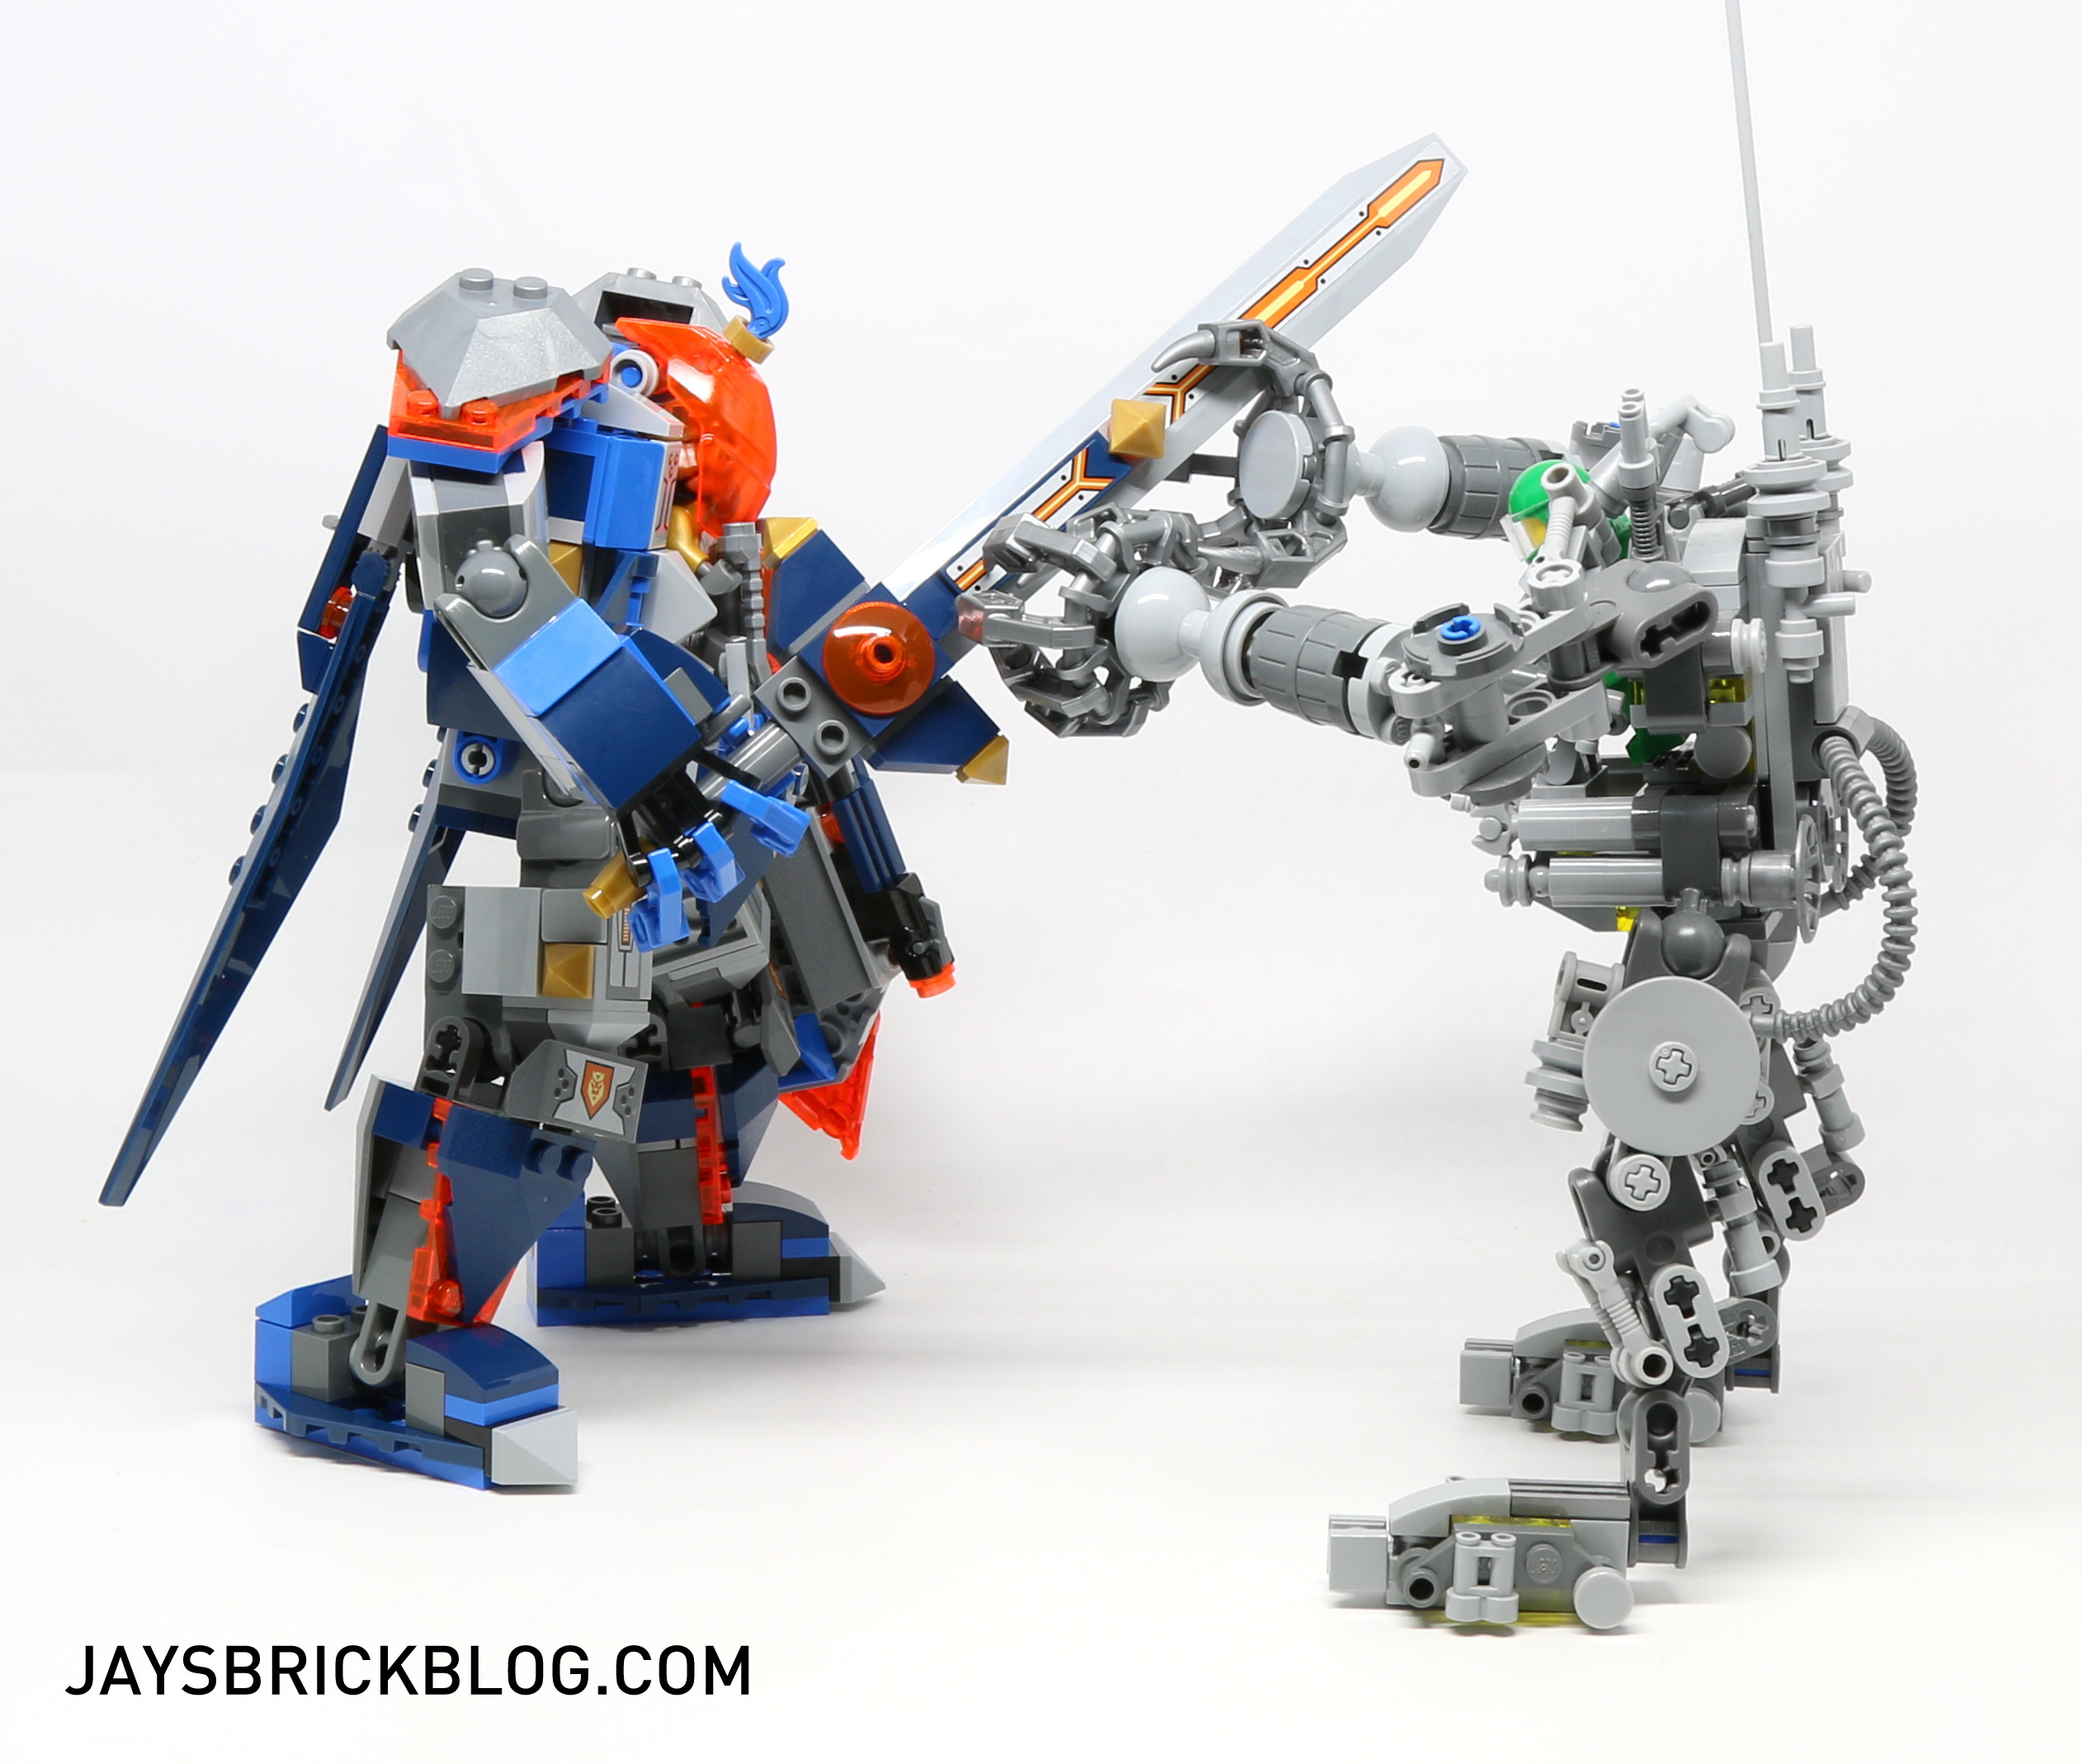 Review: LEGO 70327 The King's Mech